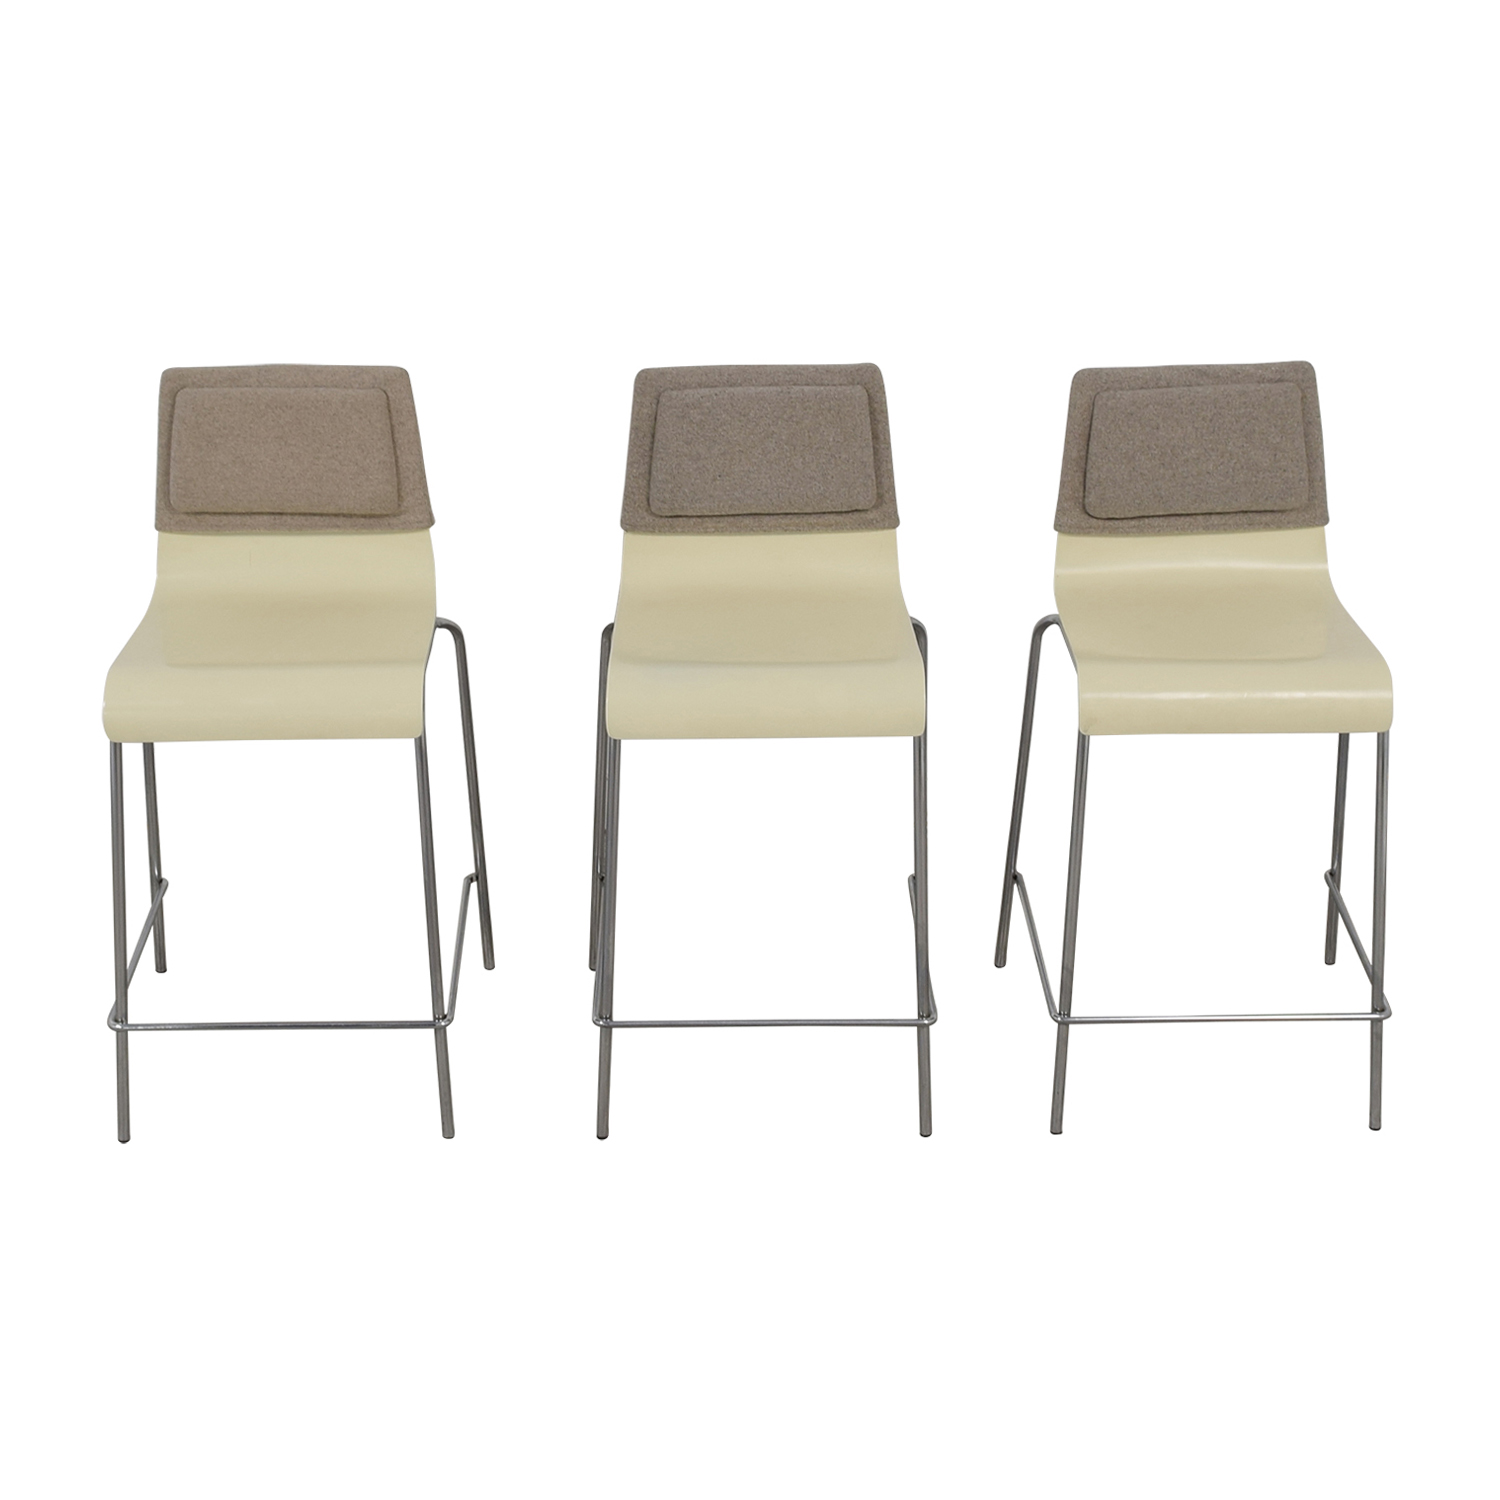 White and Grey Stools with Back Felt Pads for sale